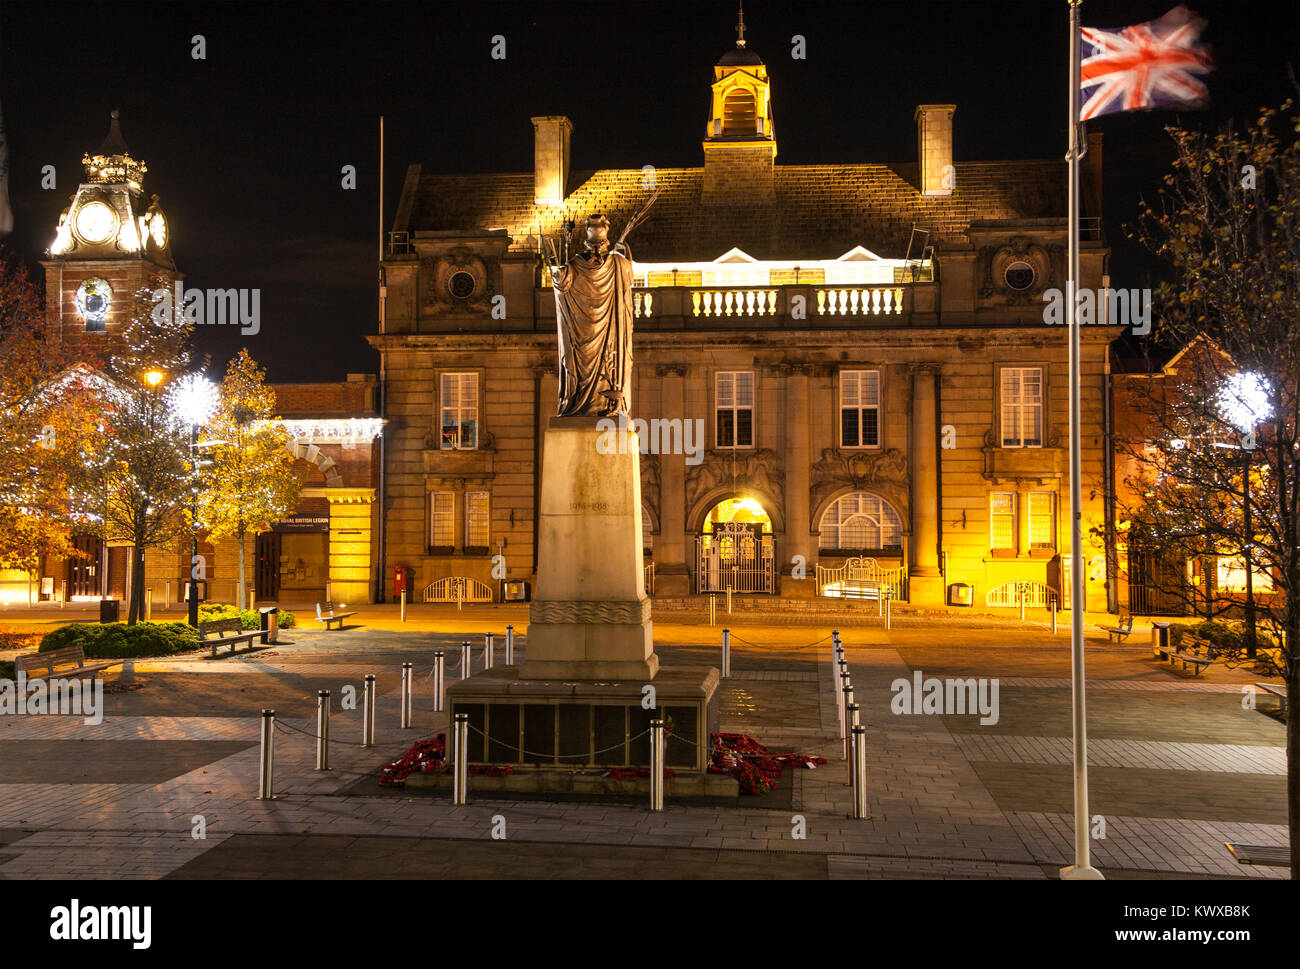 Crewe Town Center Cheshire Floodlit At Christmas Time With Christmas Tree  And Lights Showing The War Memorial Municipal Buildings Also The Town Hall